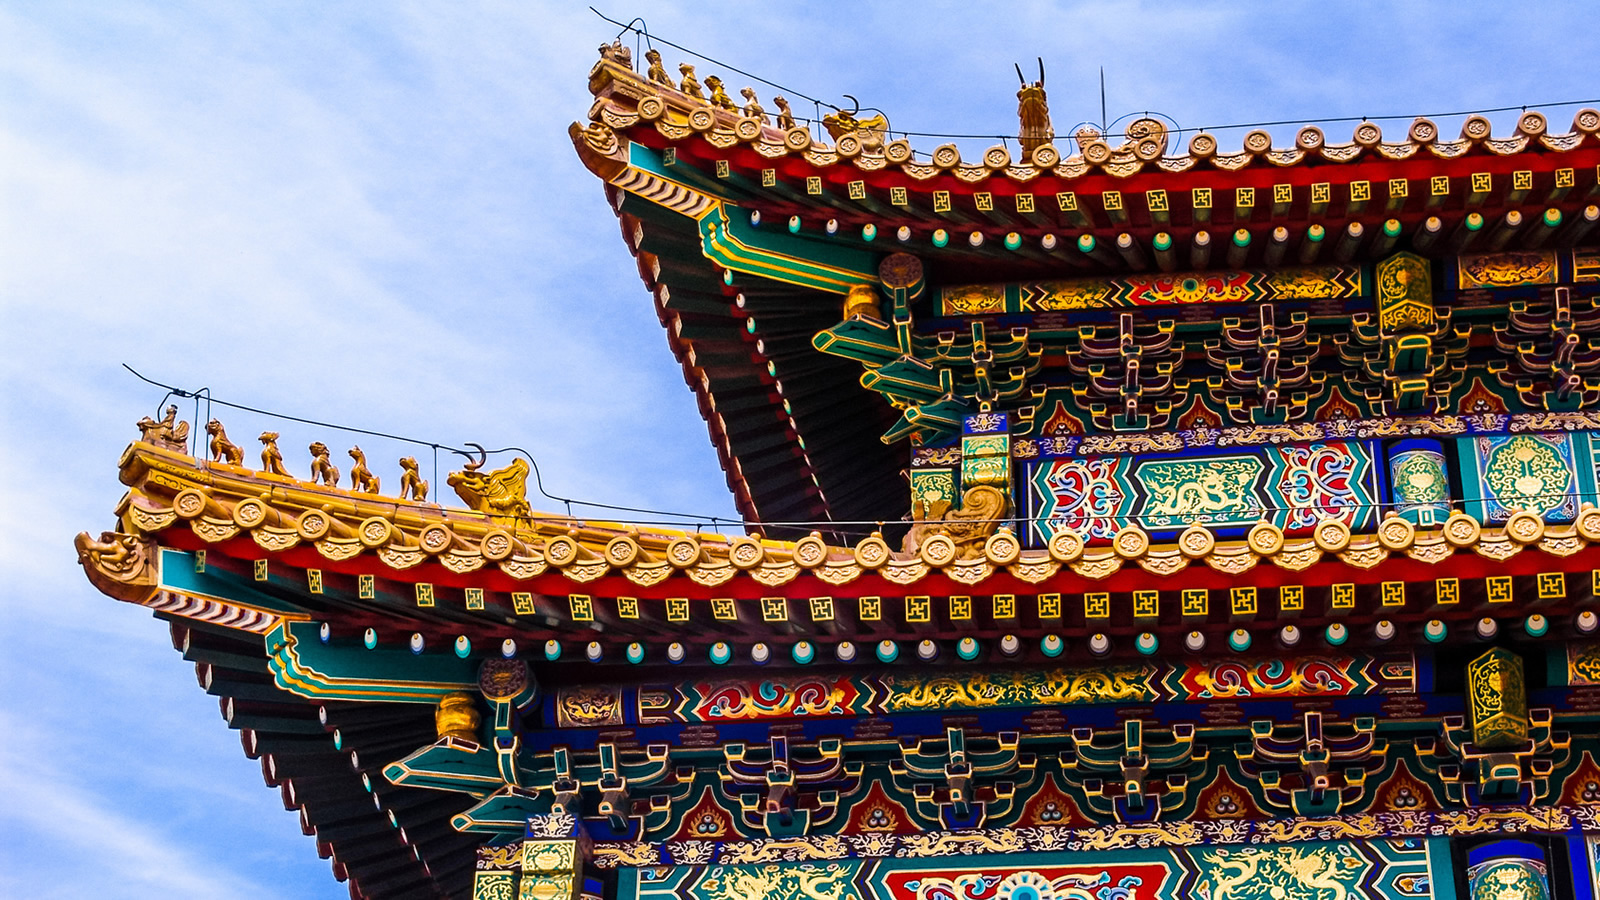 Asian Building with Colorful and Intricate Facade